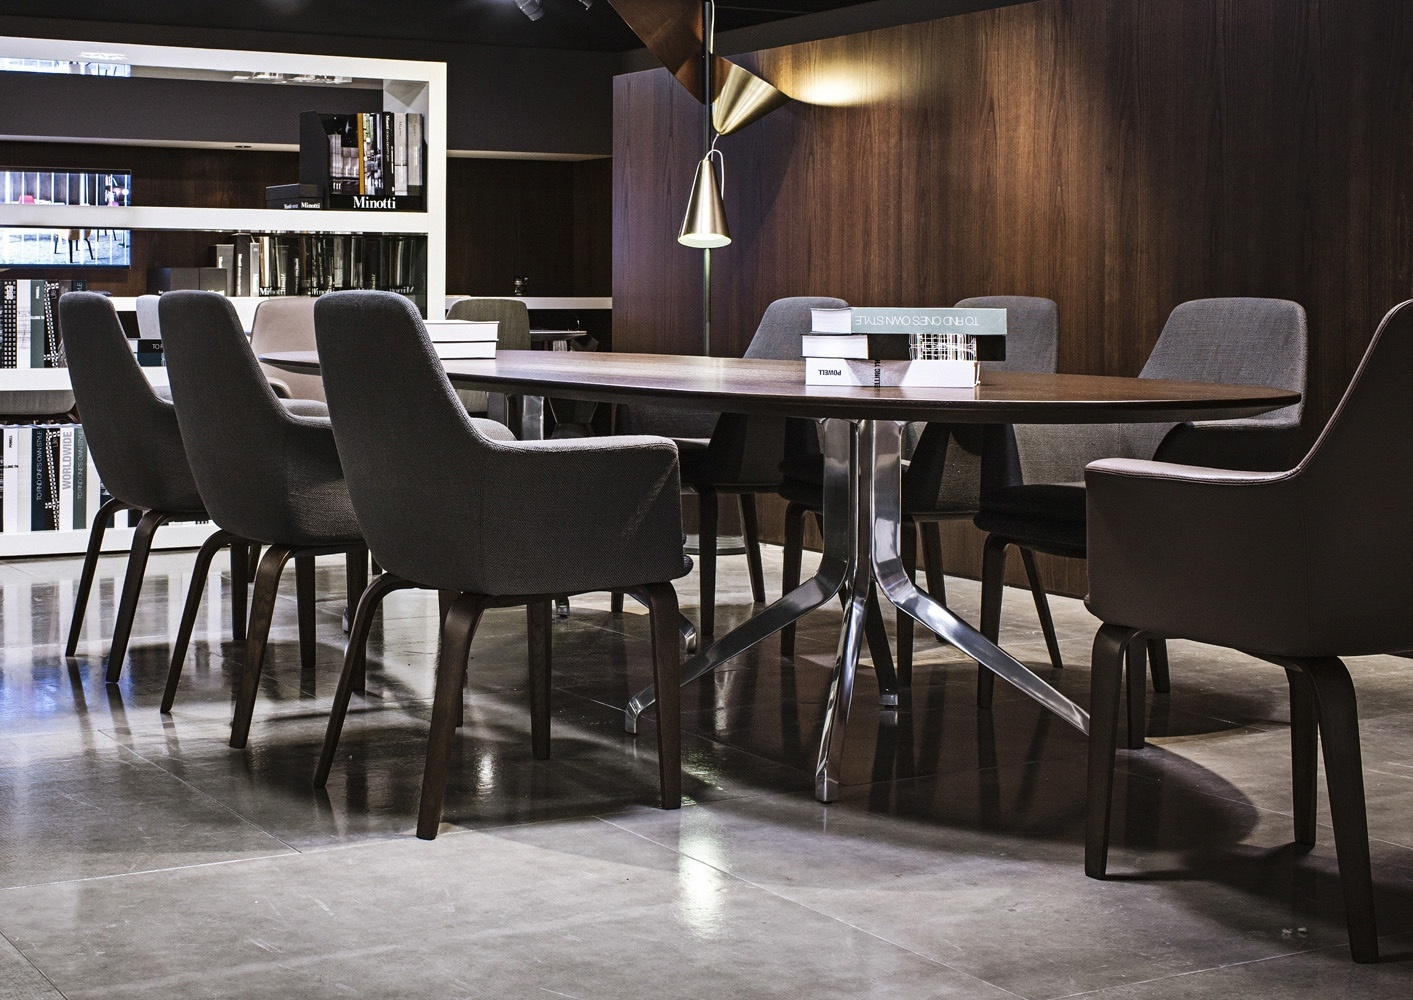 The claydon table minotti luxury furniture mr for Minotti outlet italy